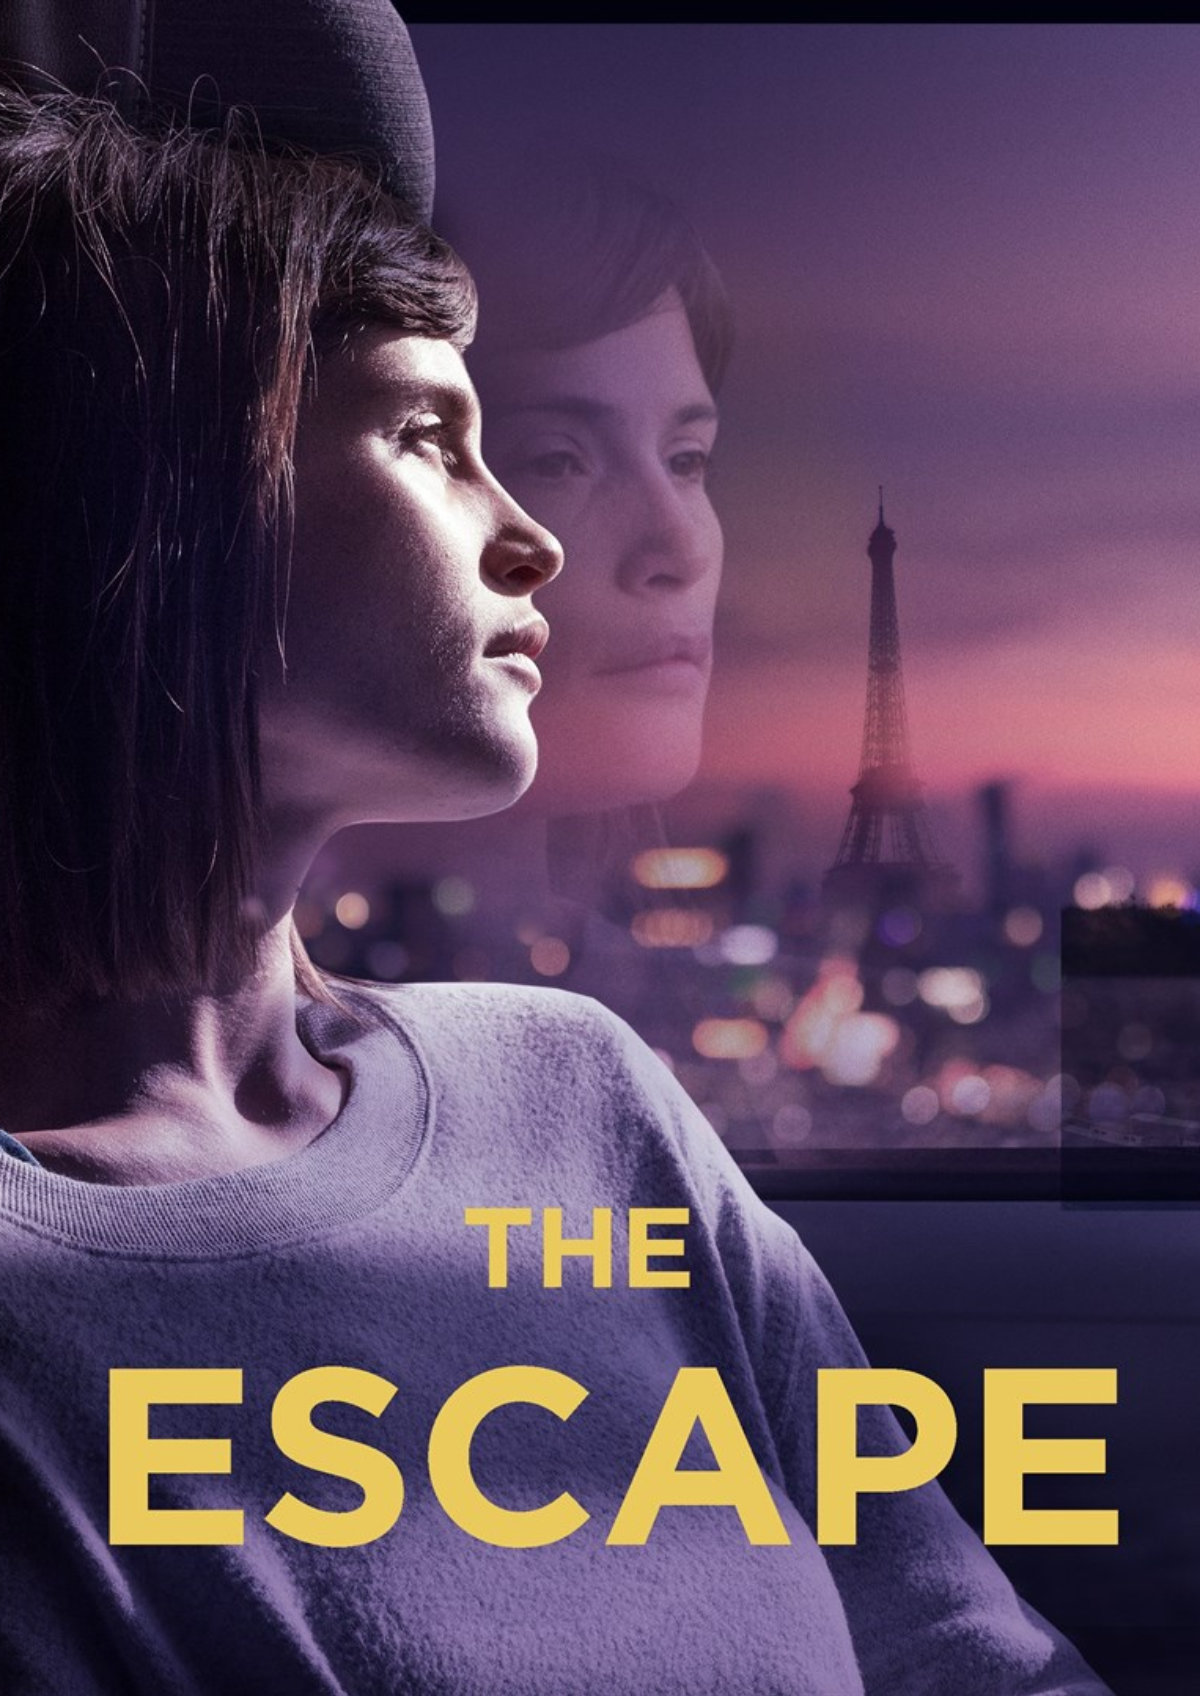 'The Escape' movie poster